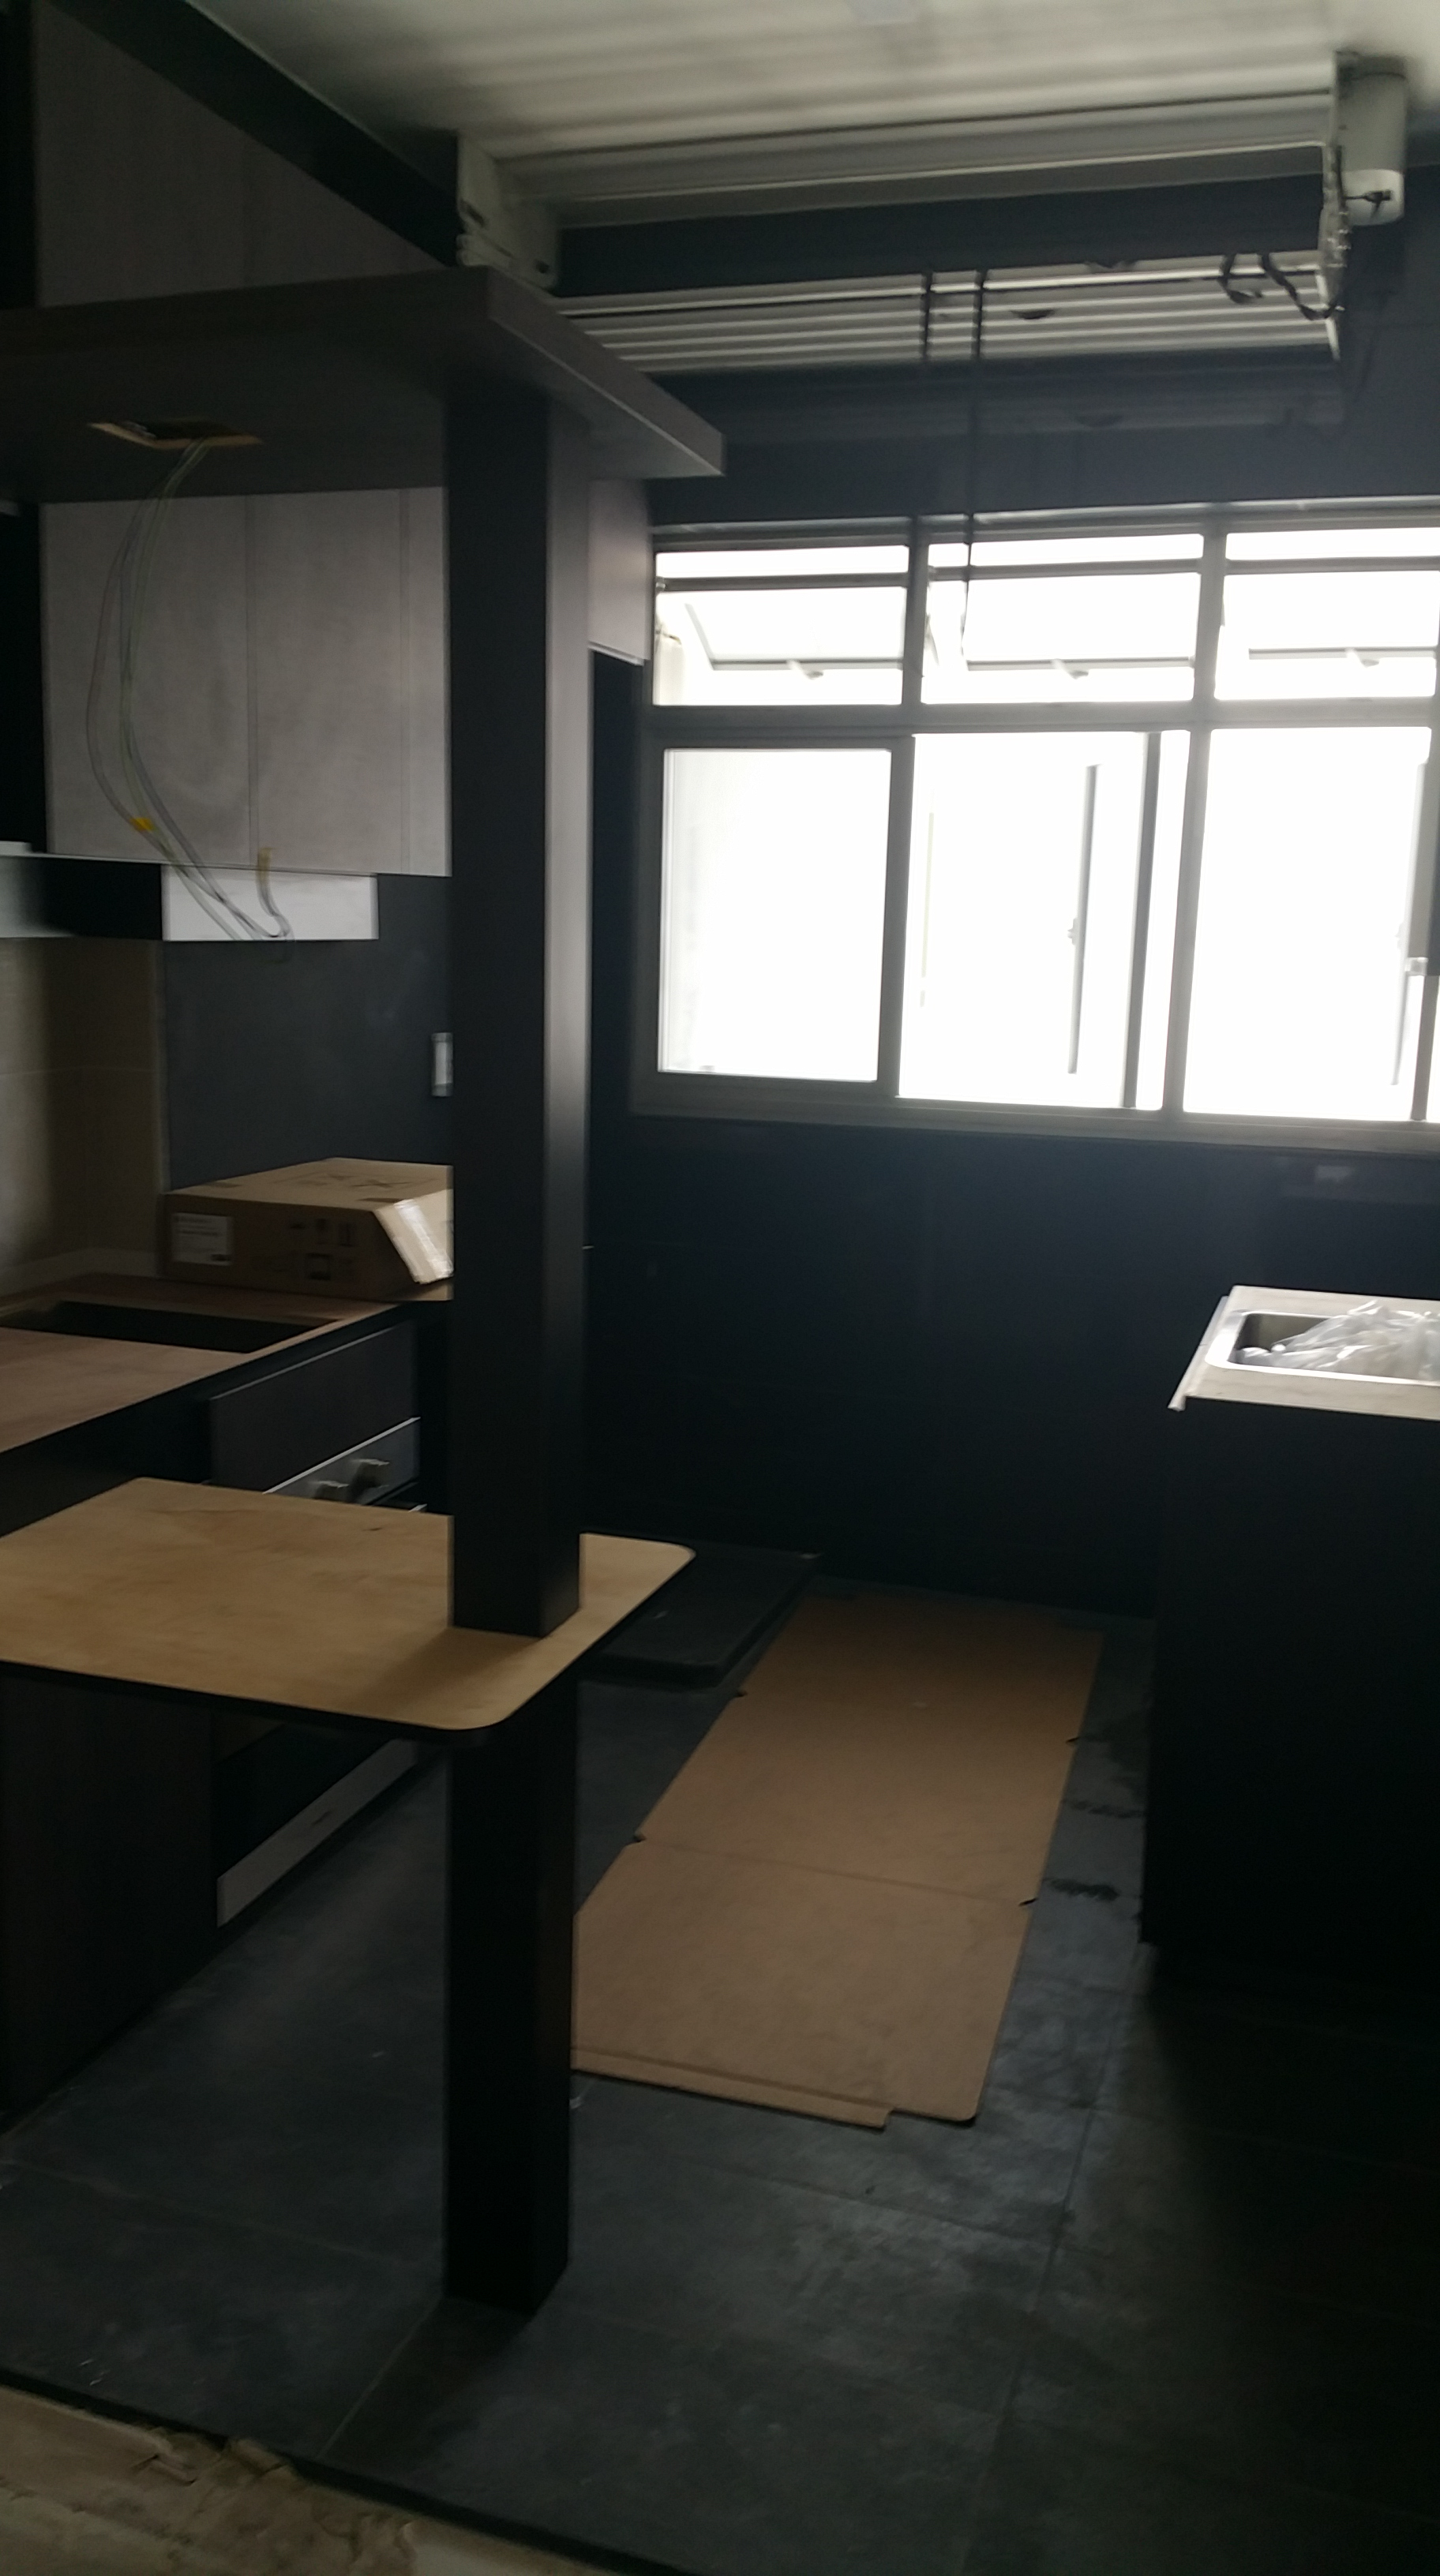 Hdb Two Room Bto 47: End Of 7th Week After Key Collection. Carpentry Works